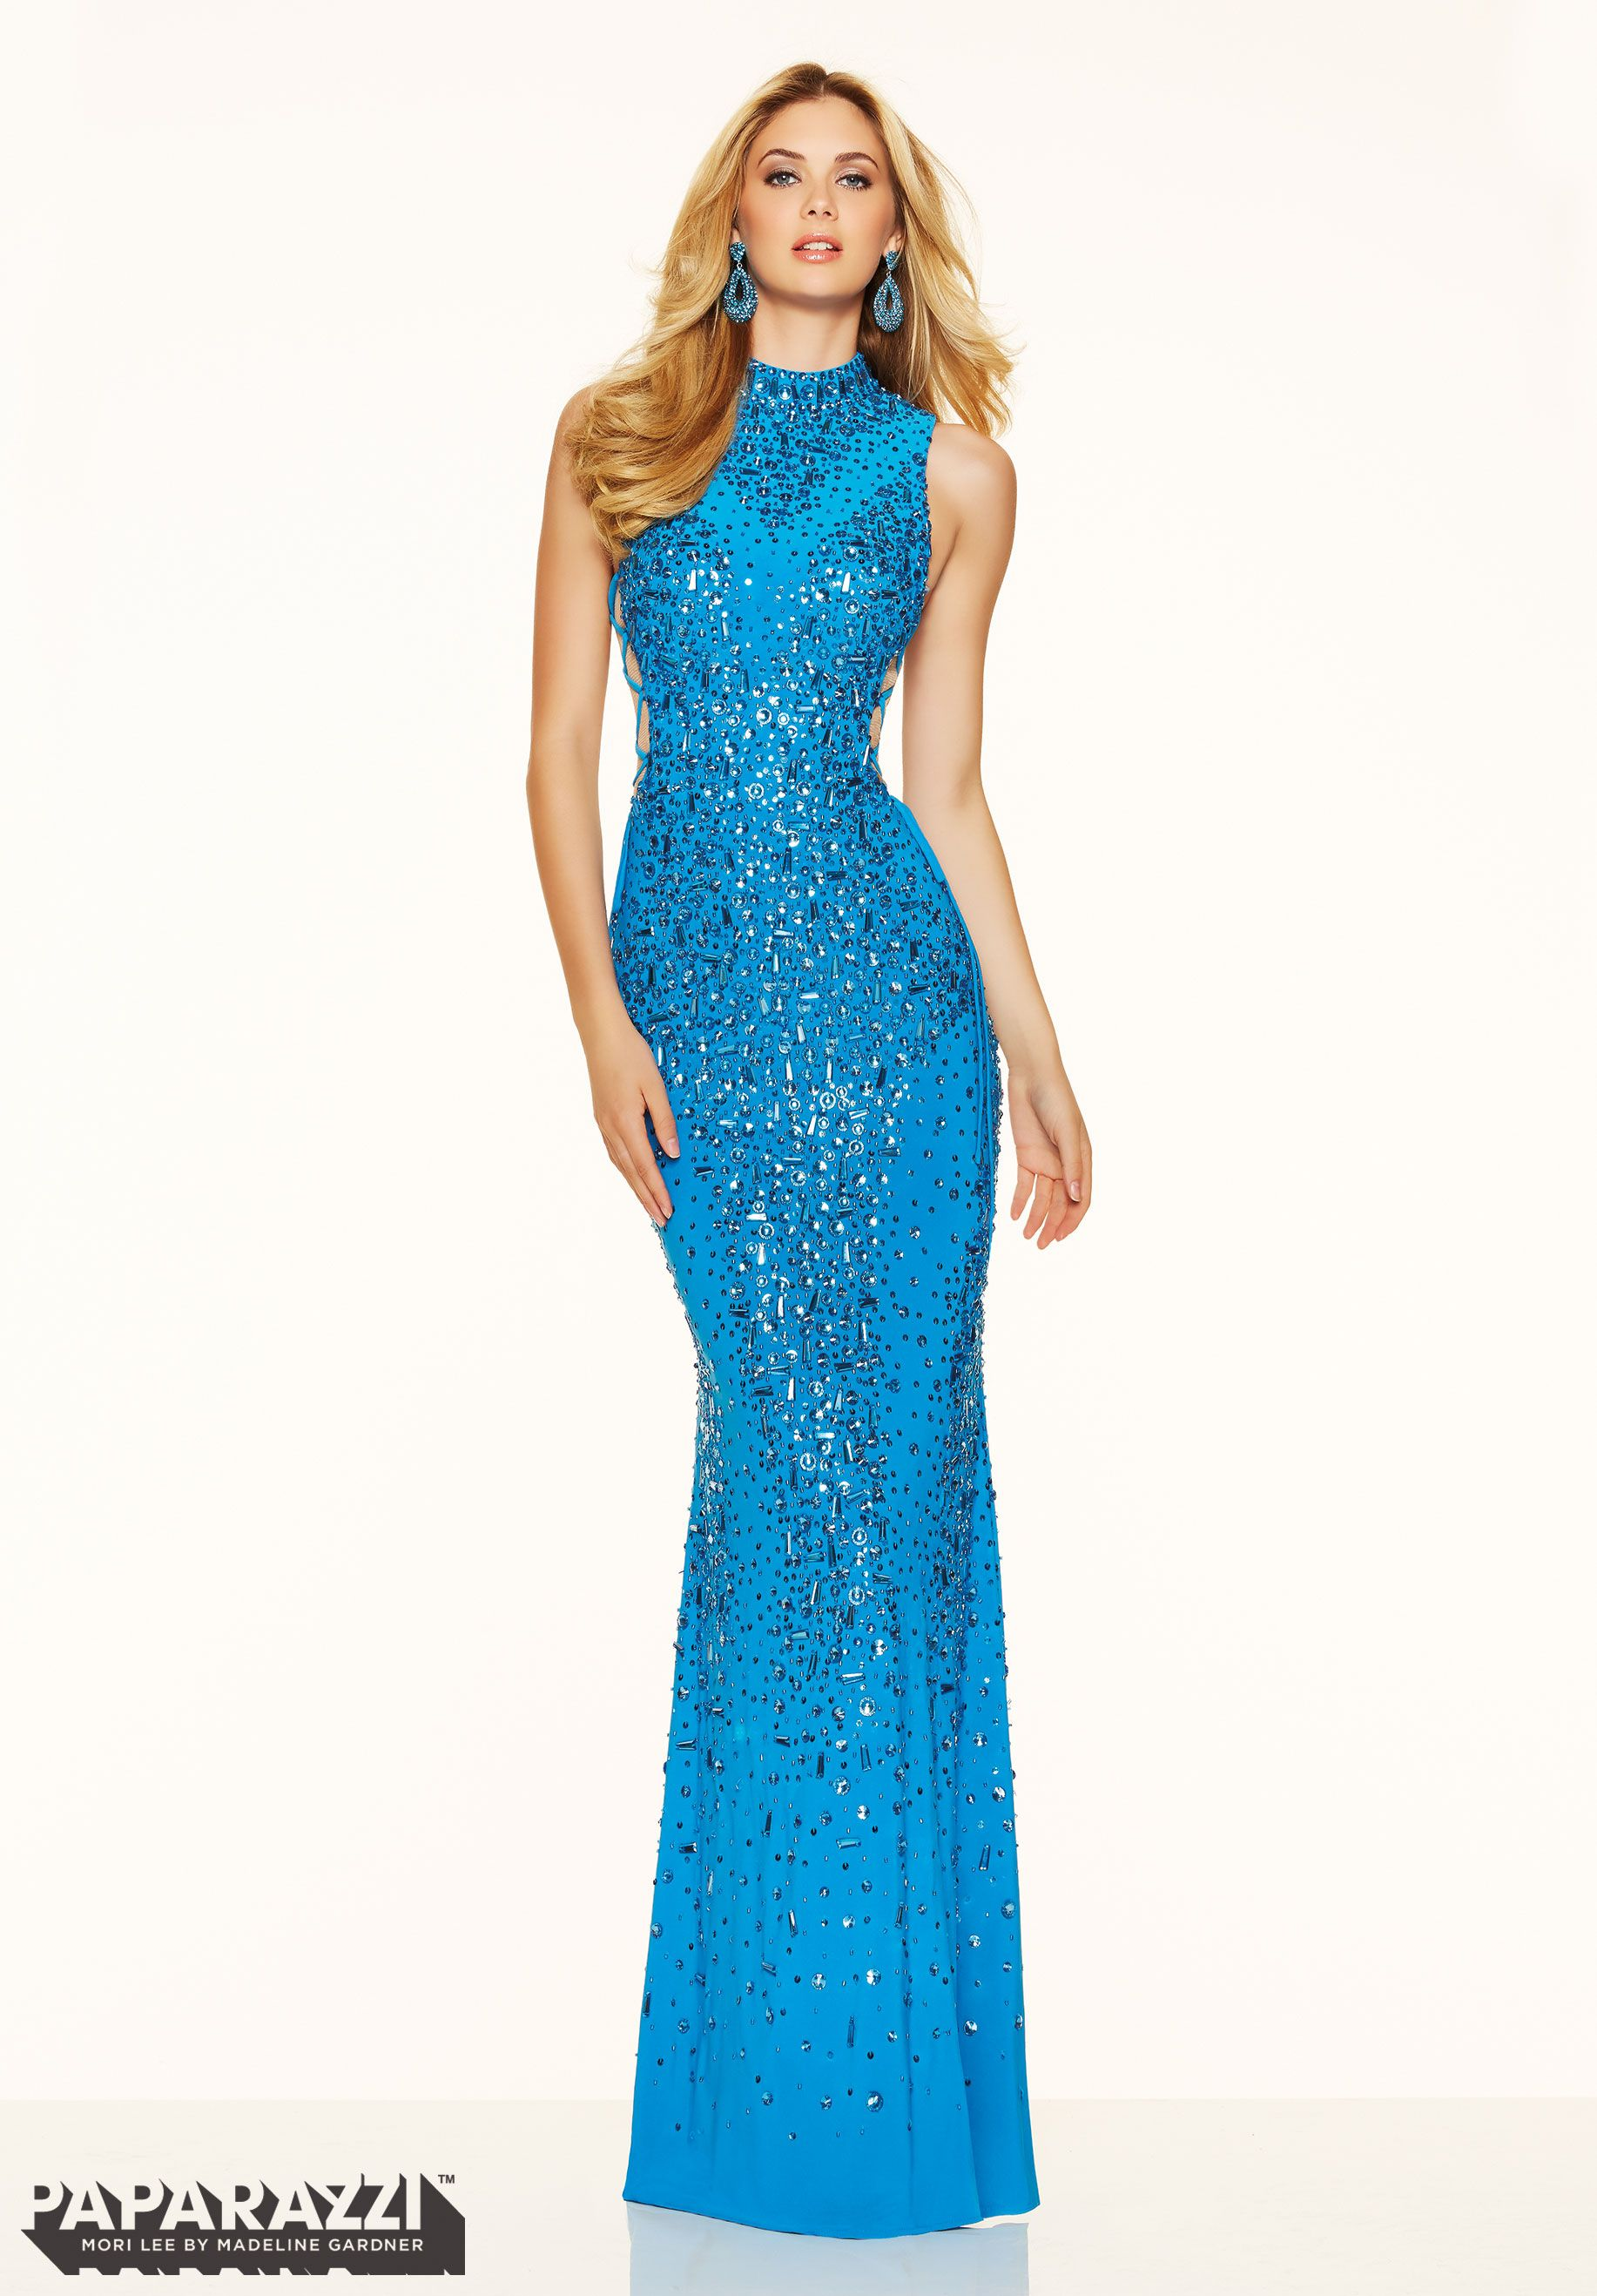 Prom Dresses by Paparazzi Prom - Dress Style 98068 | PROM ...